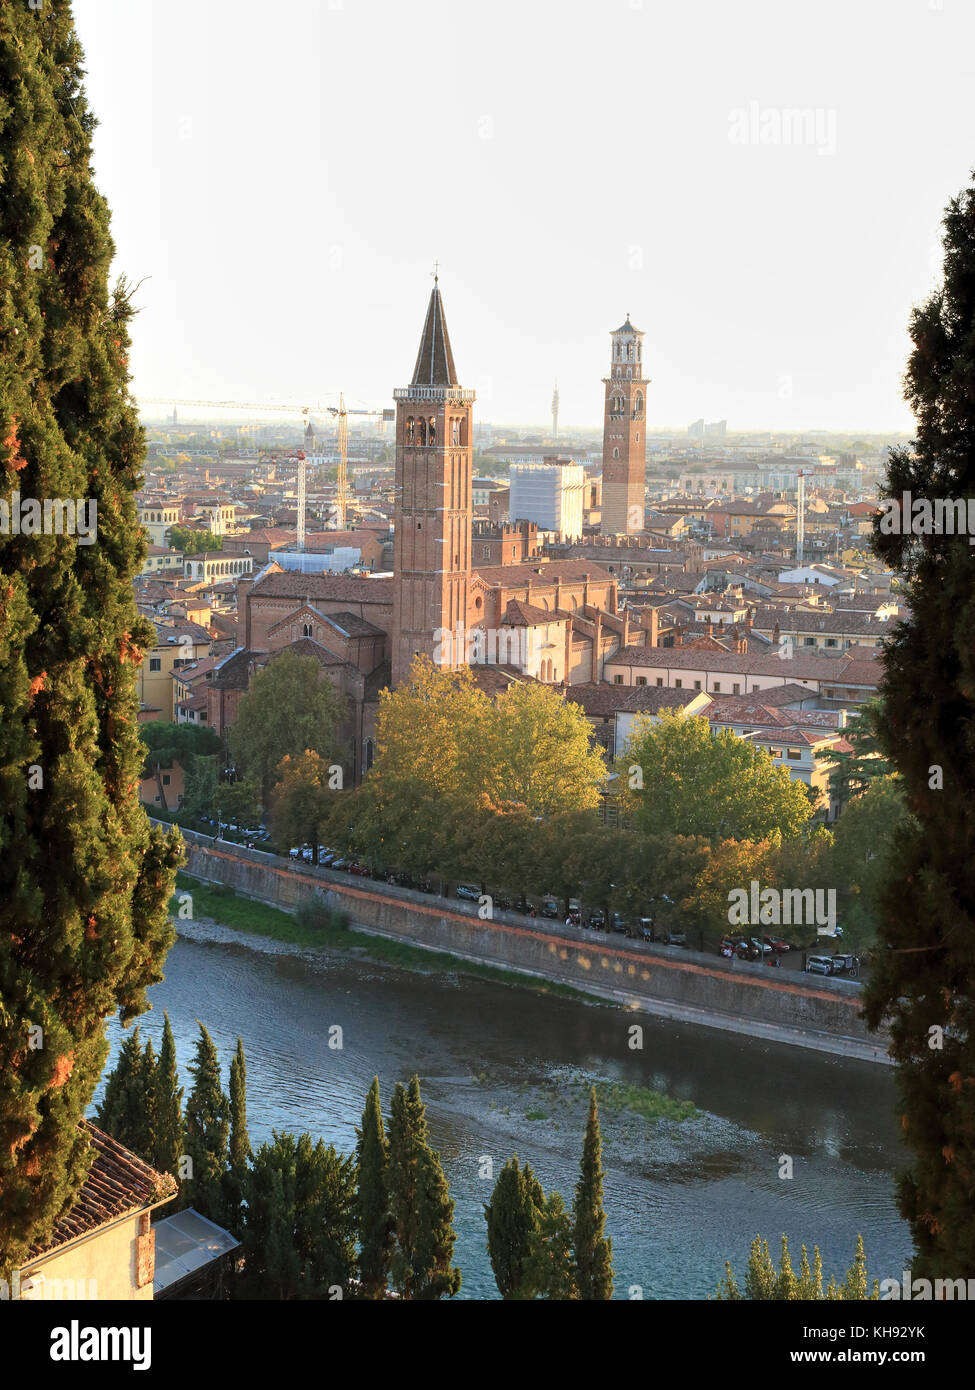 Verona, view from Saint Peter's Hill - Colle San Pietro - Stock Image